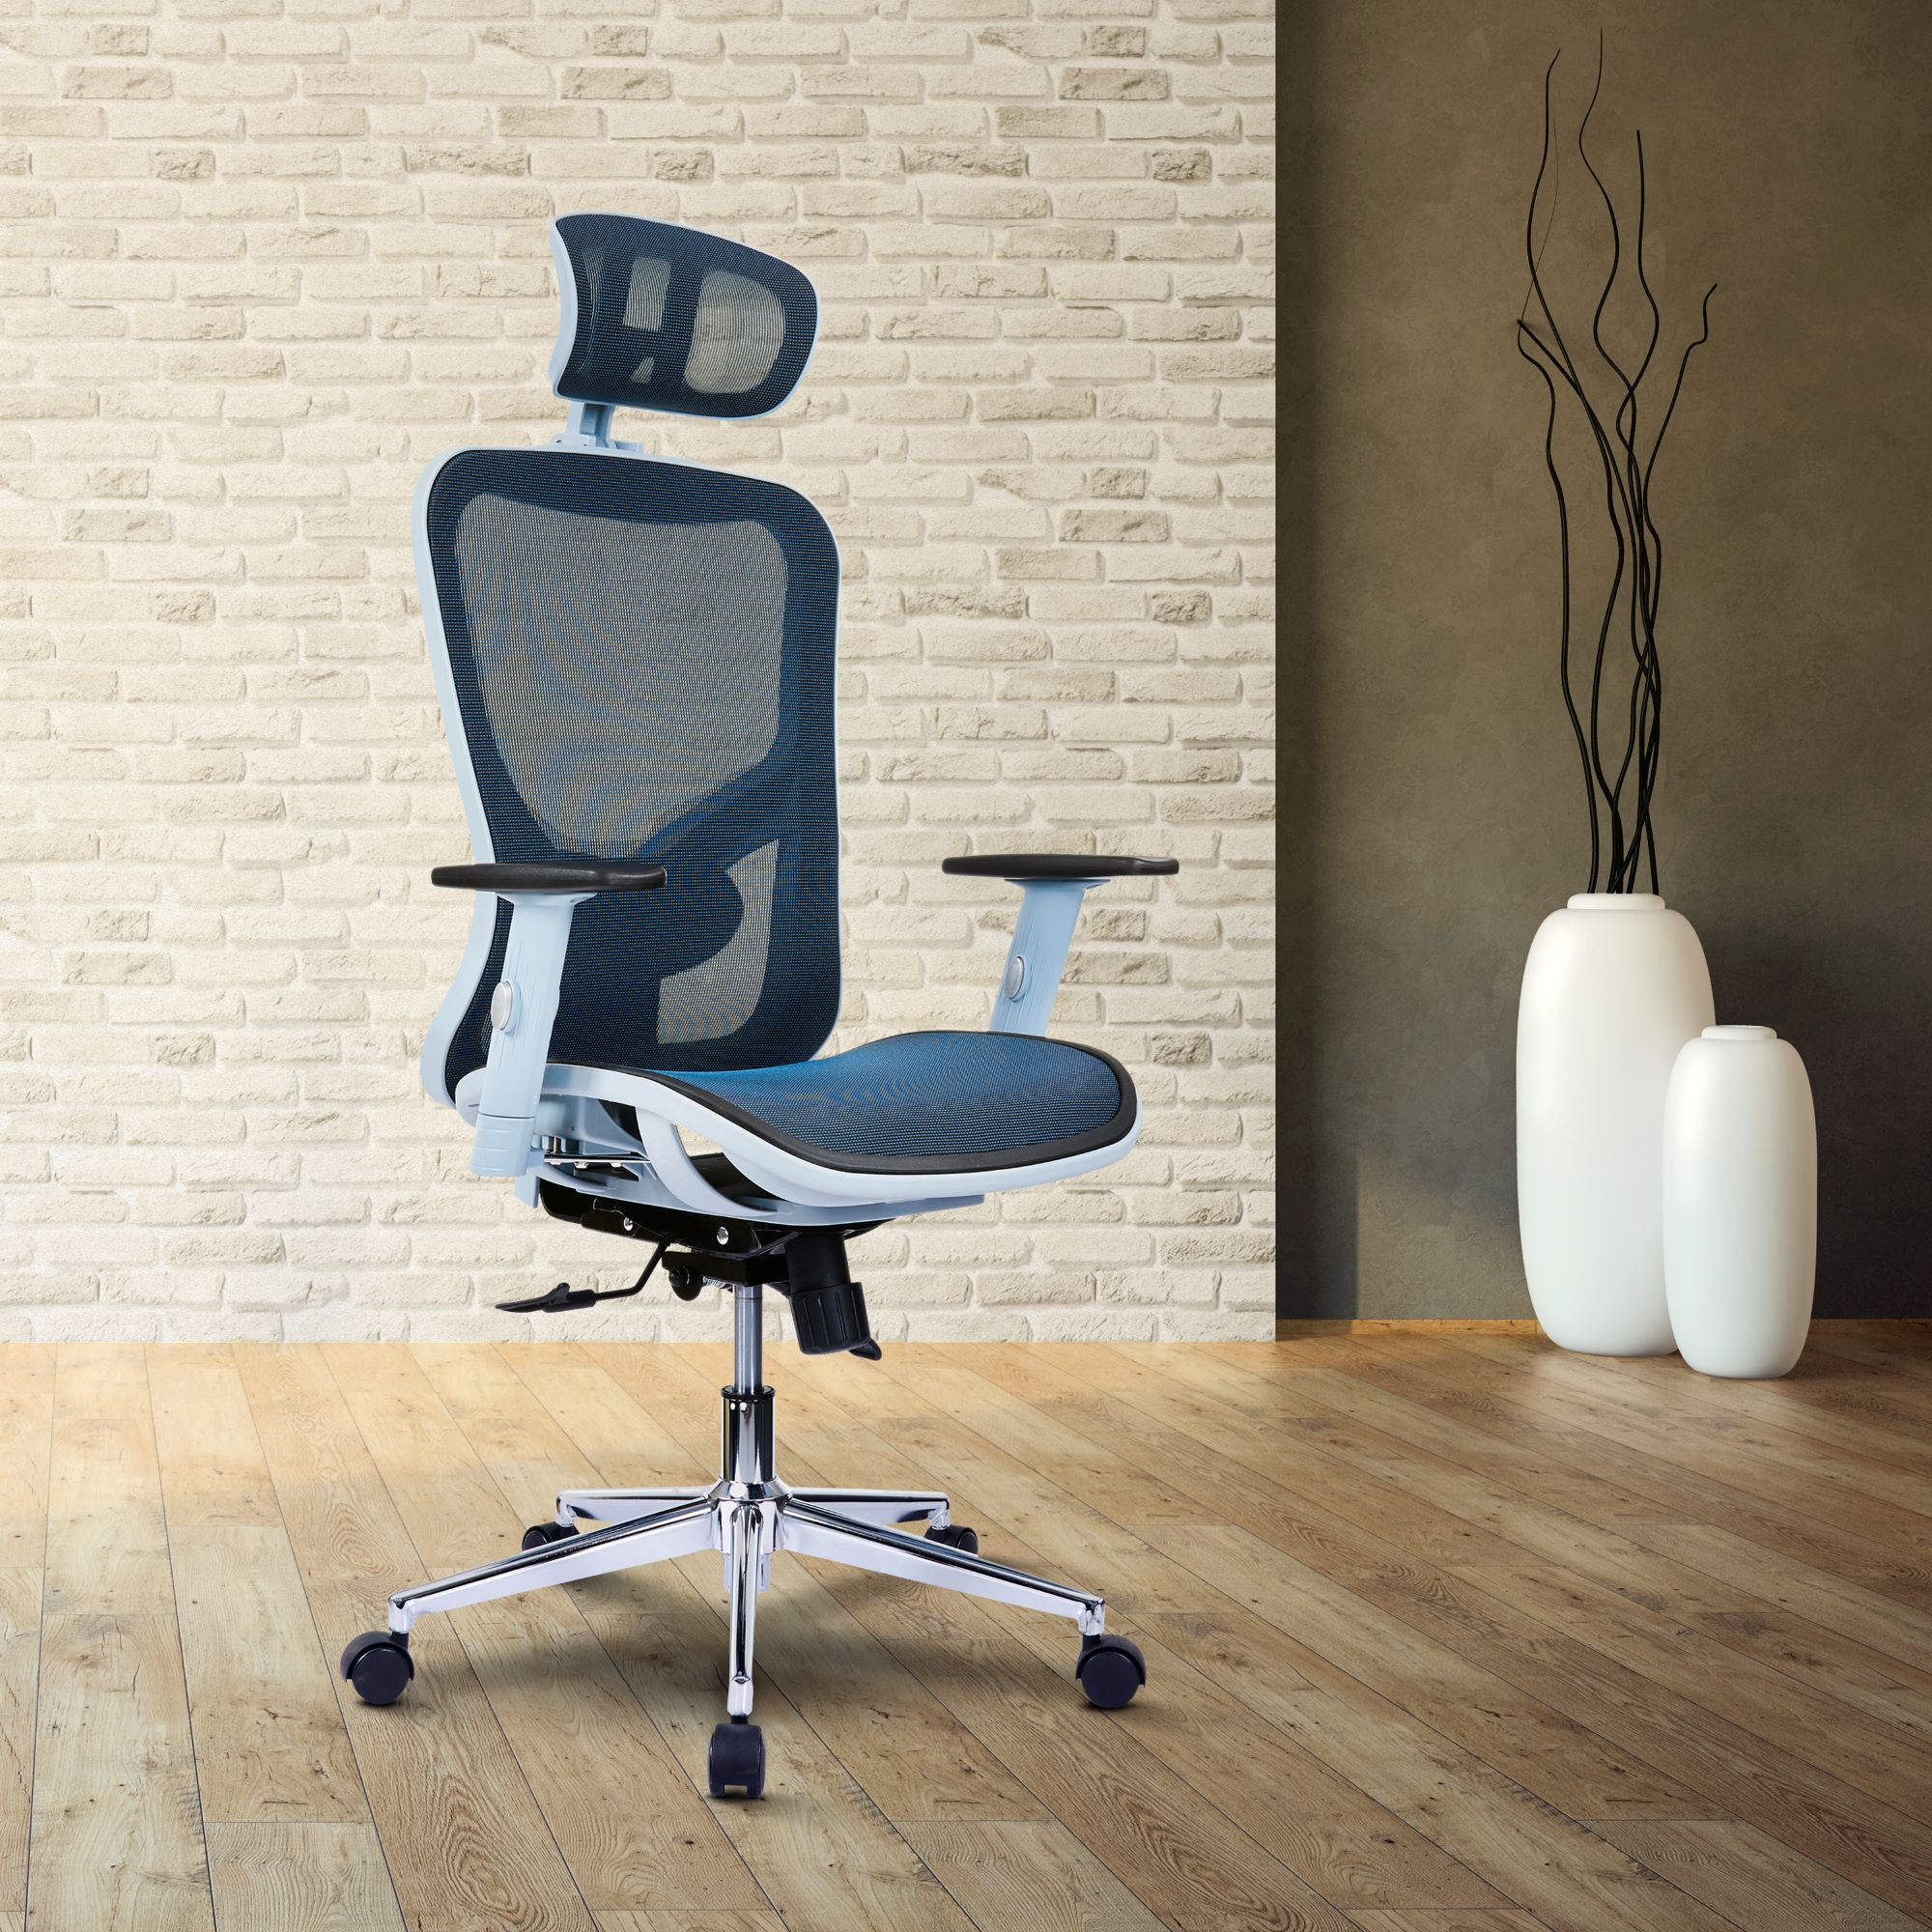 The Techni Mobili High Back Executive Mesh Office Chair With Arms Headrest And Lumbar Support Blue